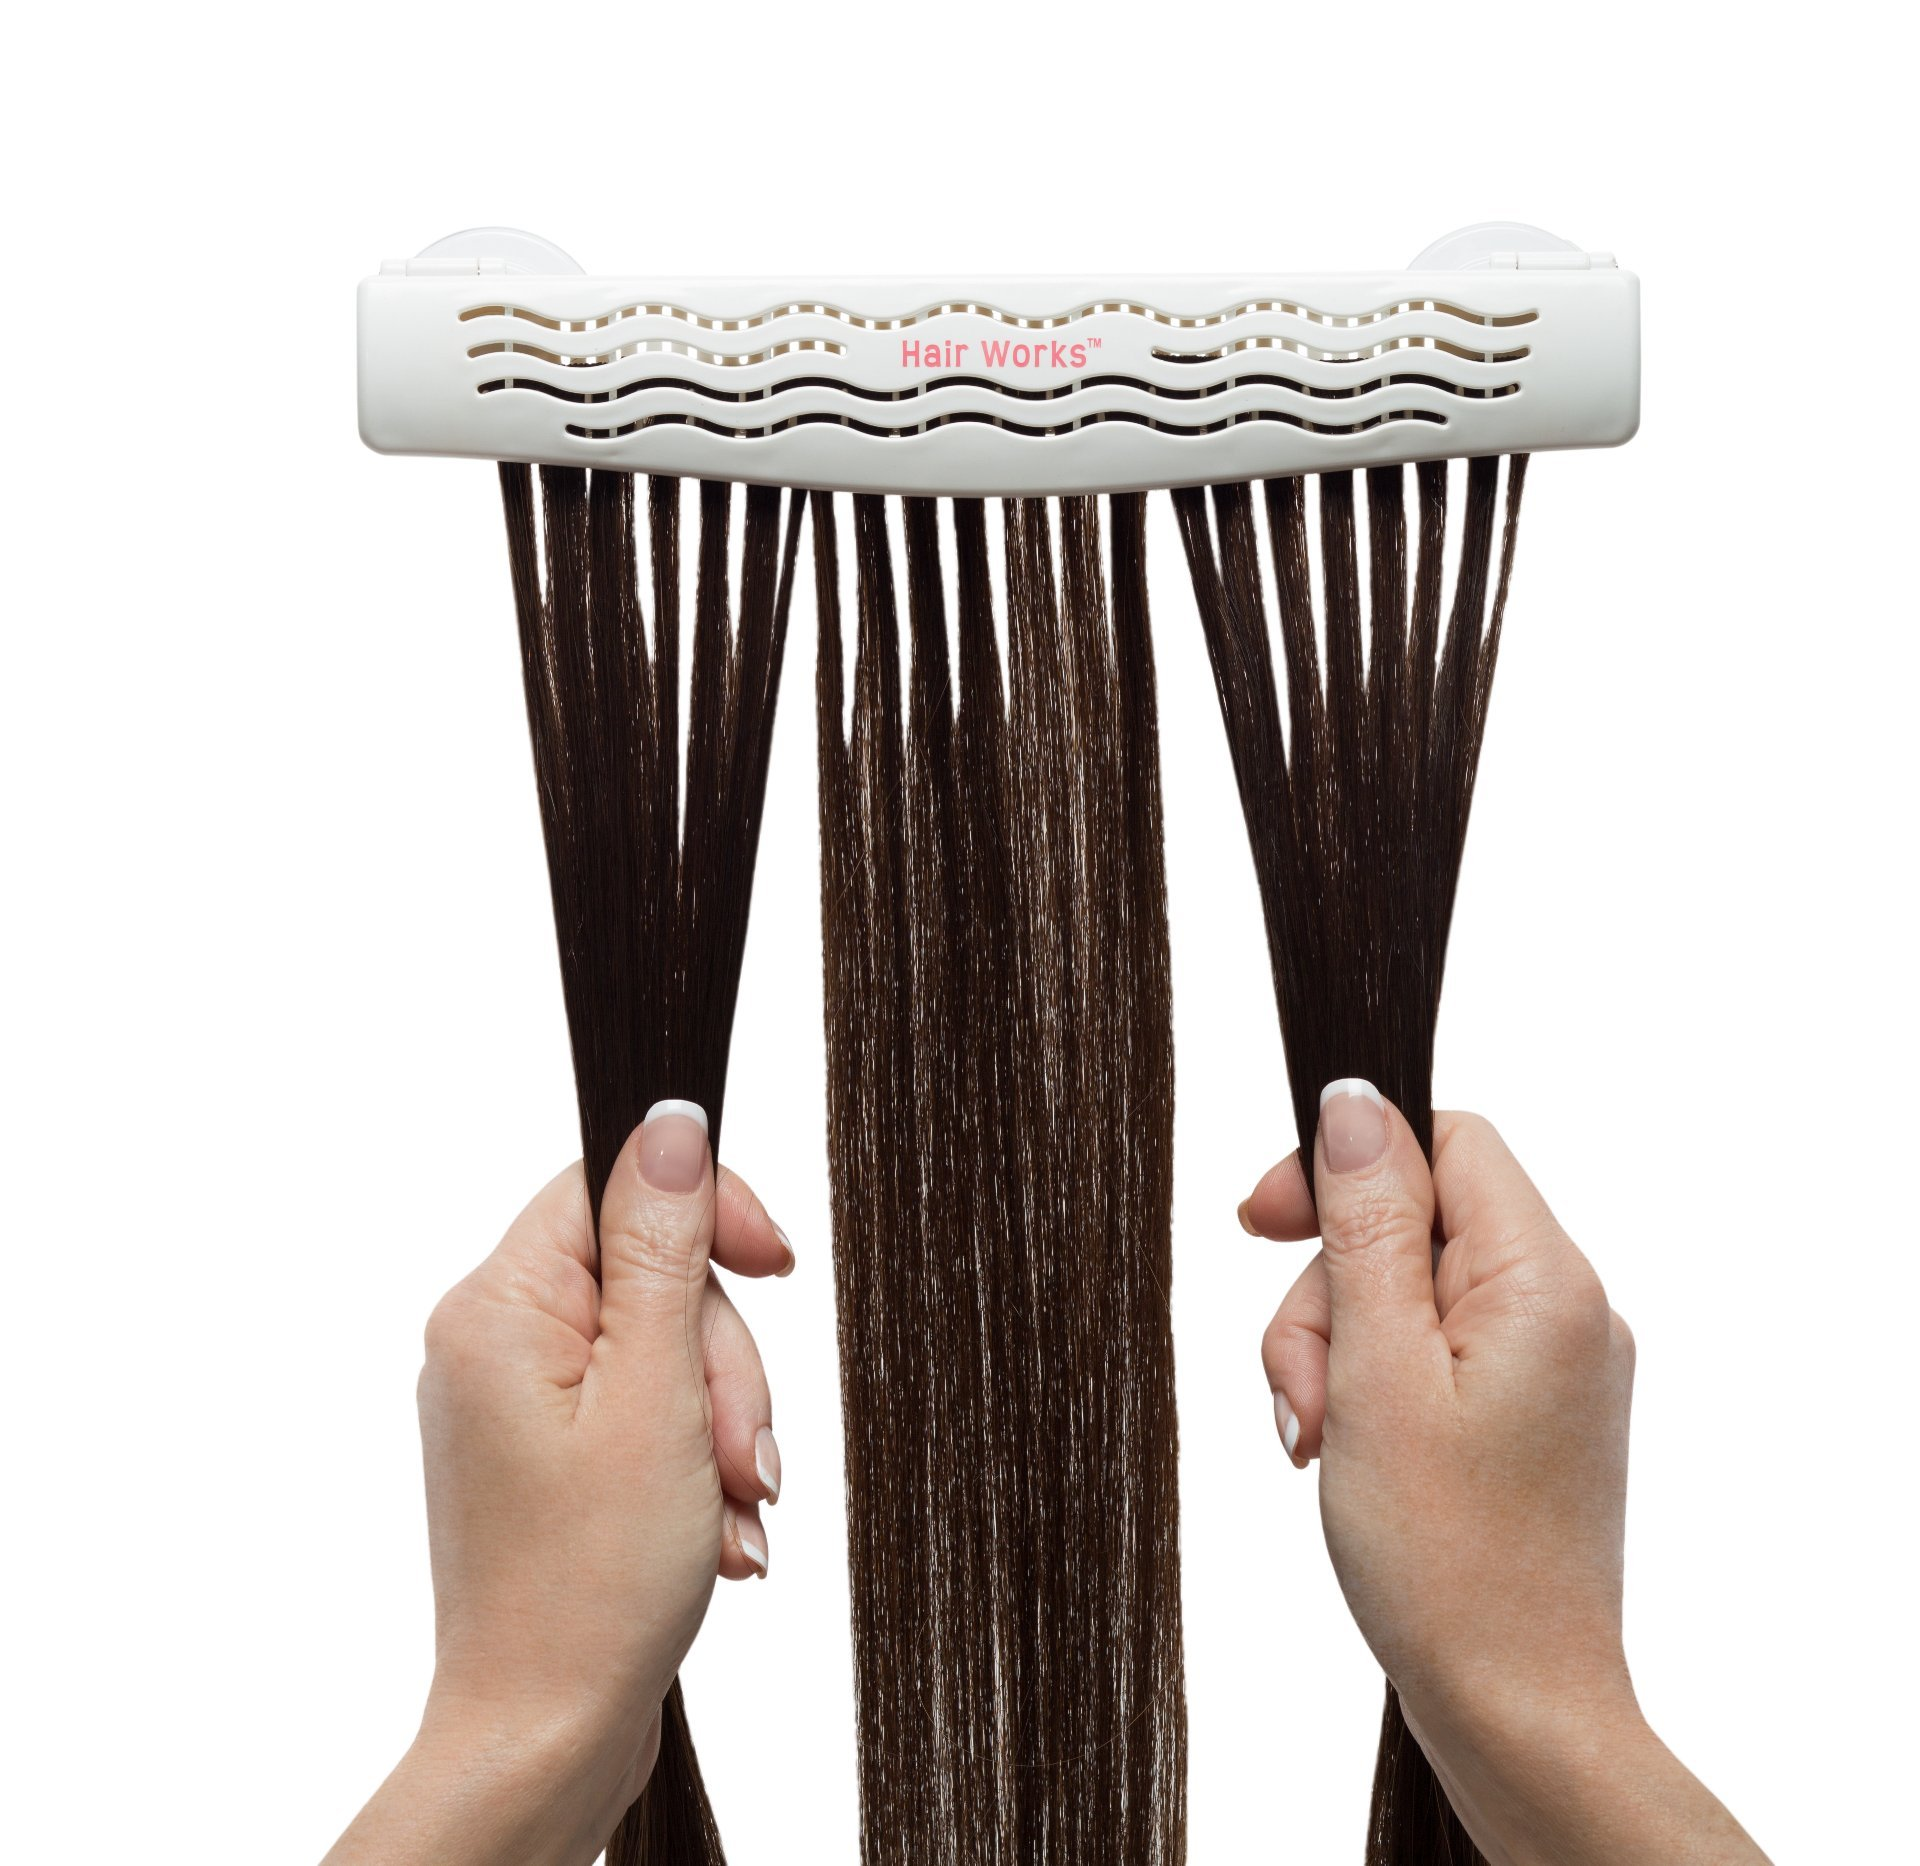 Hair Works 4-in-1 Hair Extension Style Caddy - Lightweight, Waterproof and Portable, This Hair Extension Holder Is Designed To Securely Hold Your Extensions While You Wash, Style, Pack and Store Them by Hair Works (Image #1)